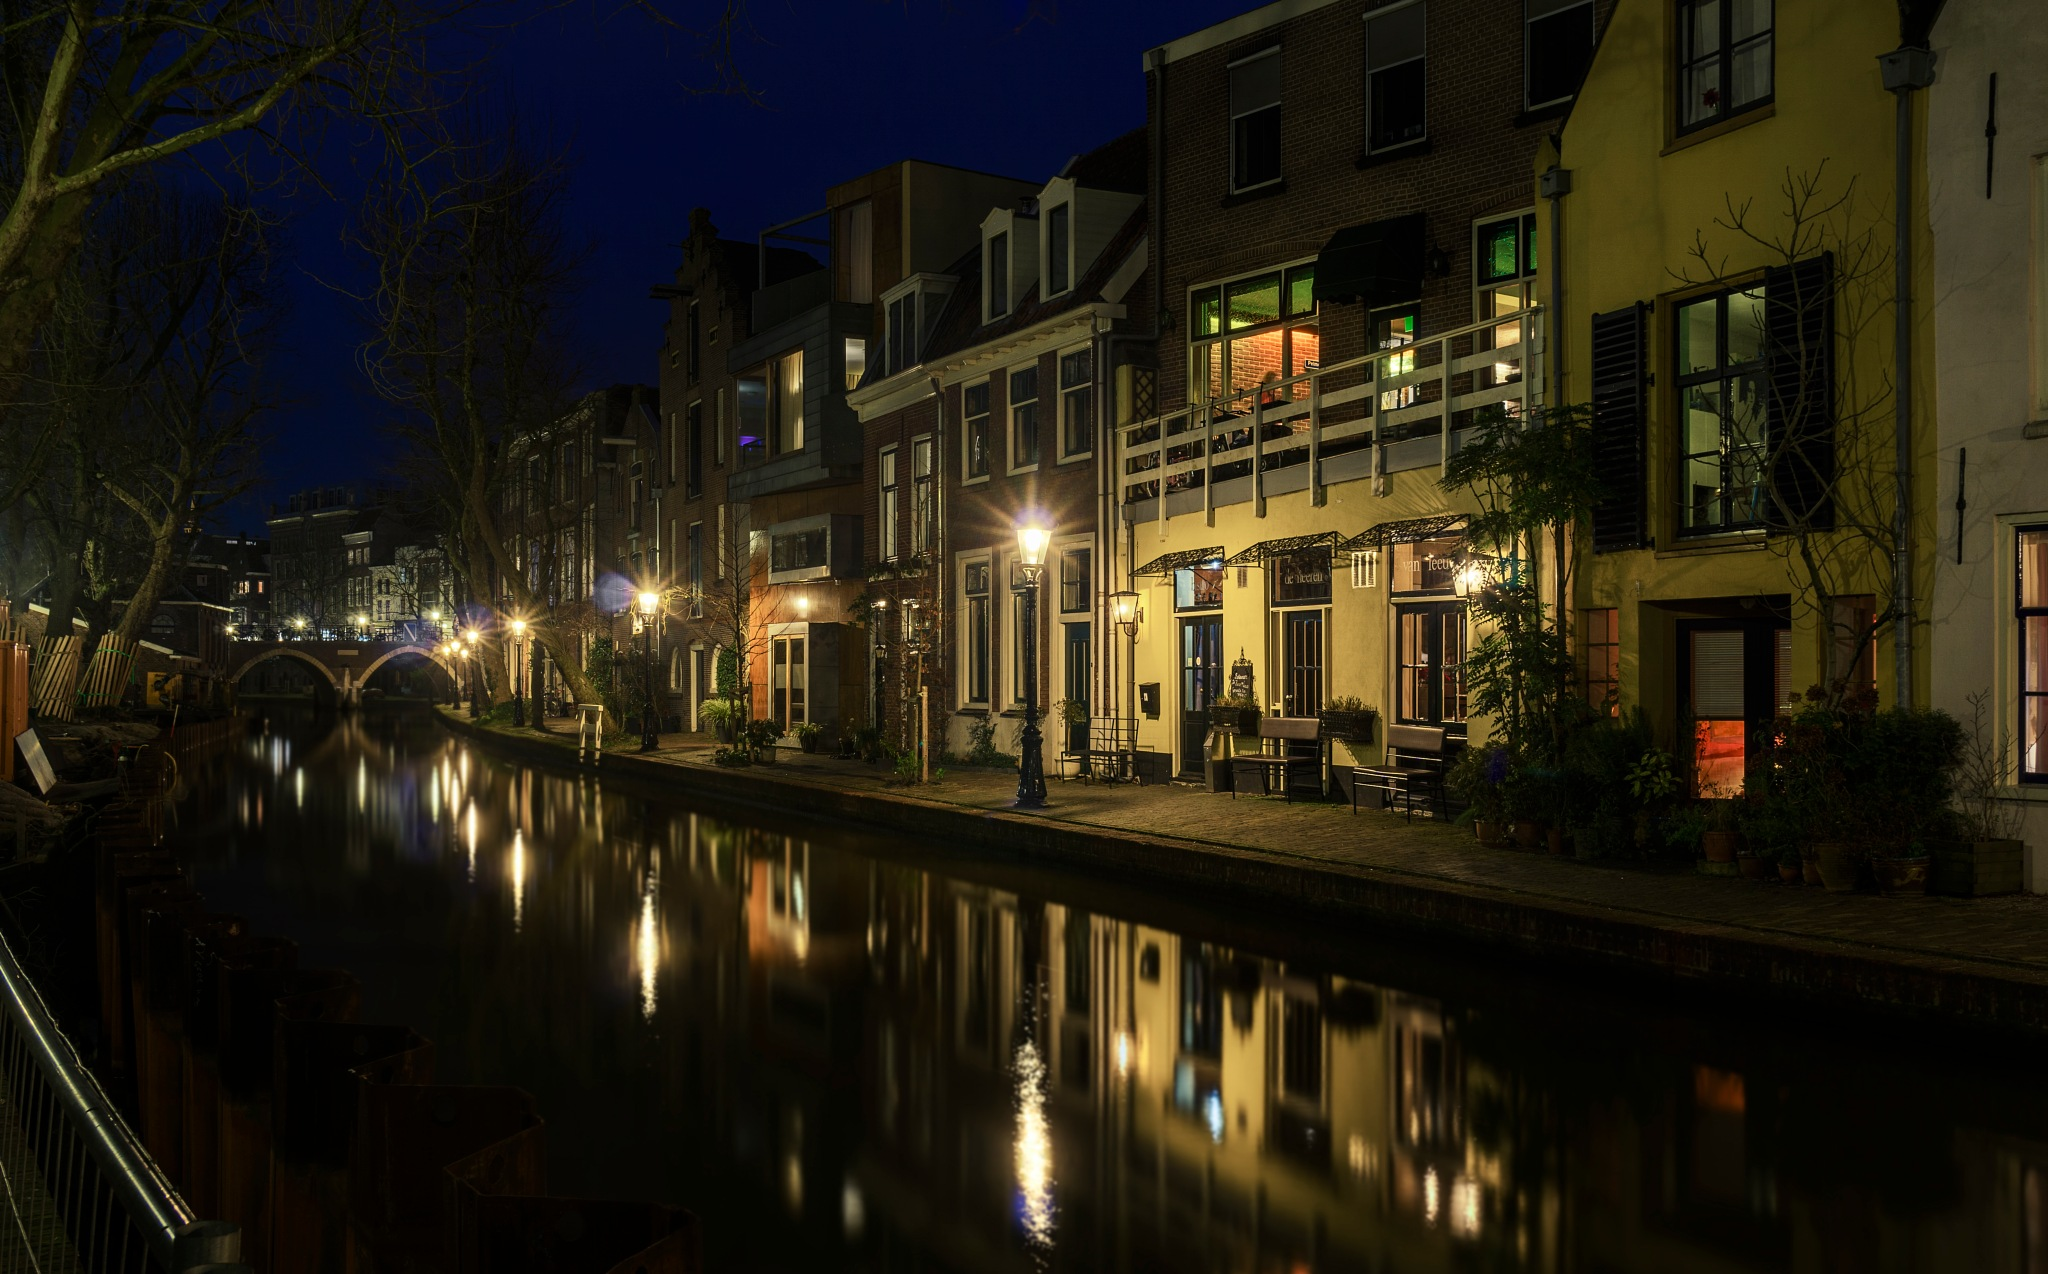 Canal lights by Shaggynum